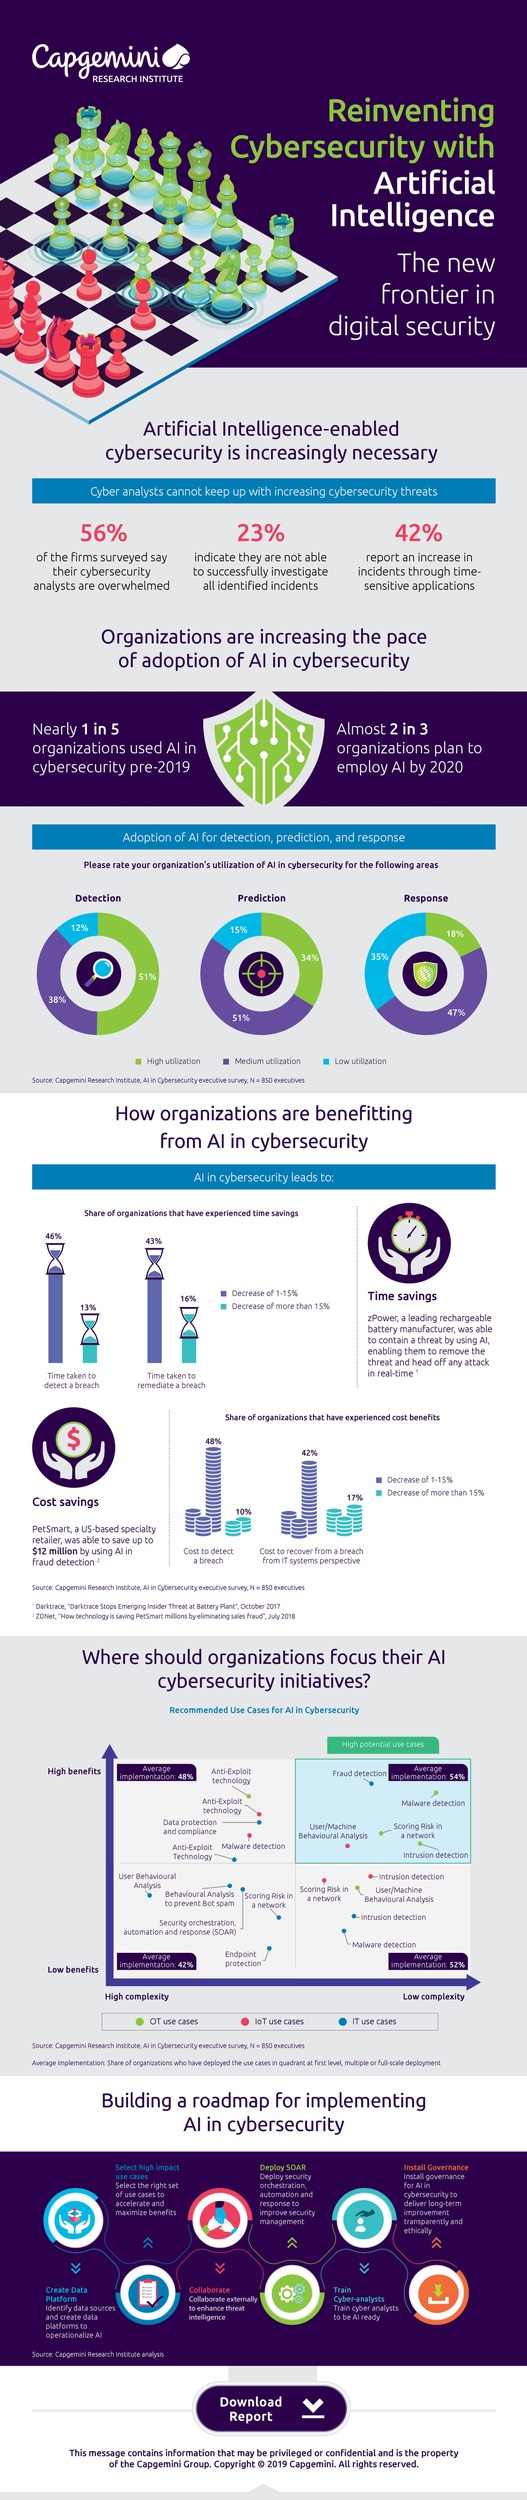 infographic-ai-in-cybersecurity.jpg